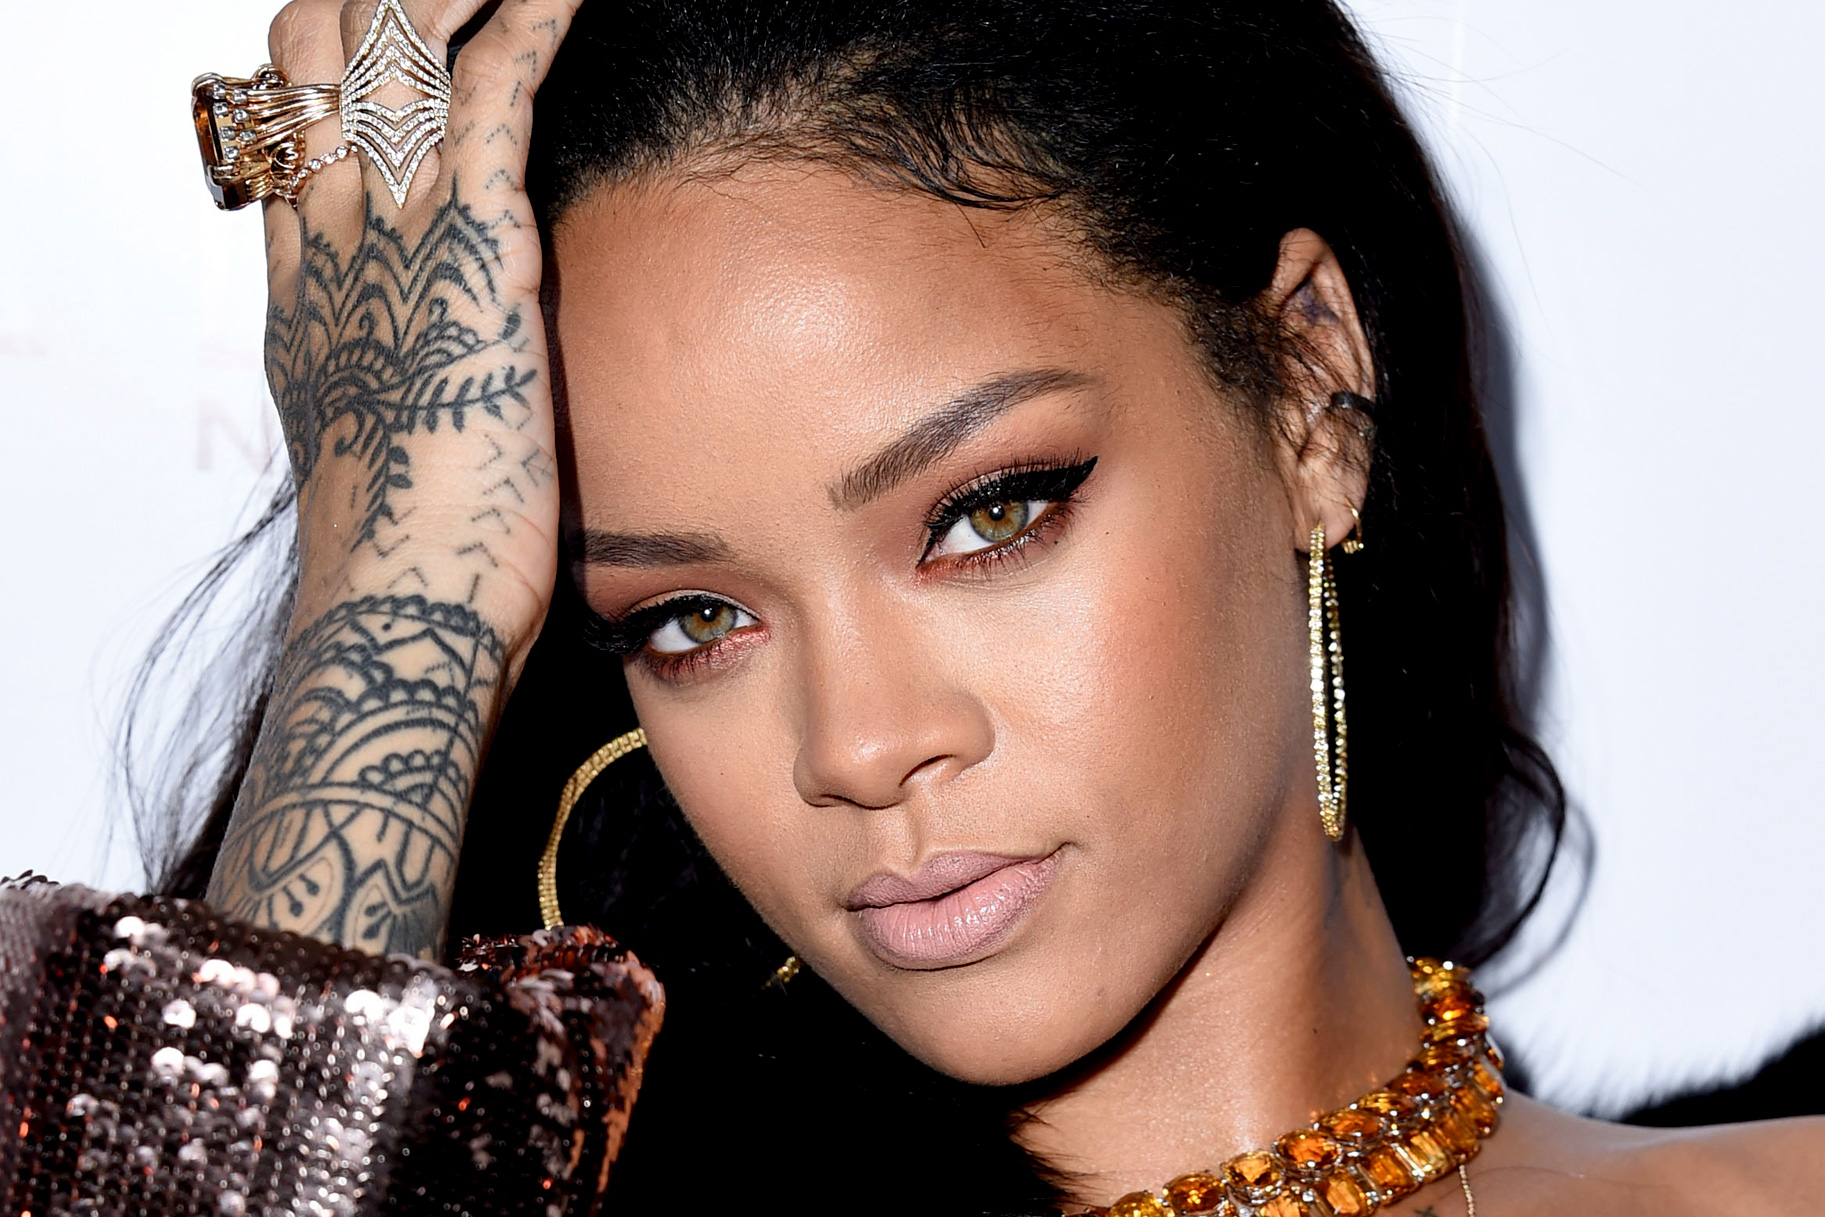 Rihanna Hand Tattoos 288.42 Kb